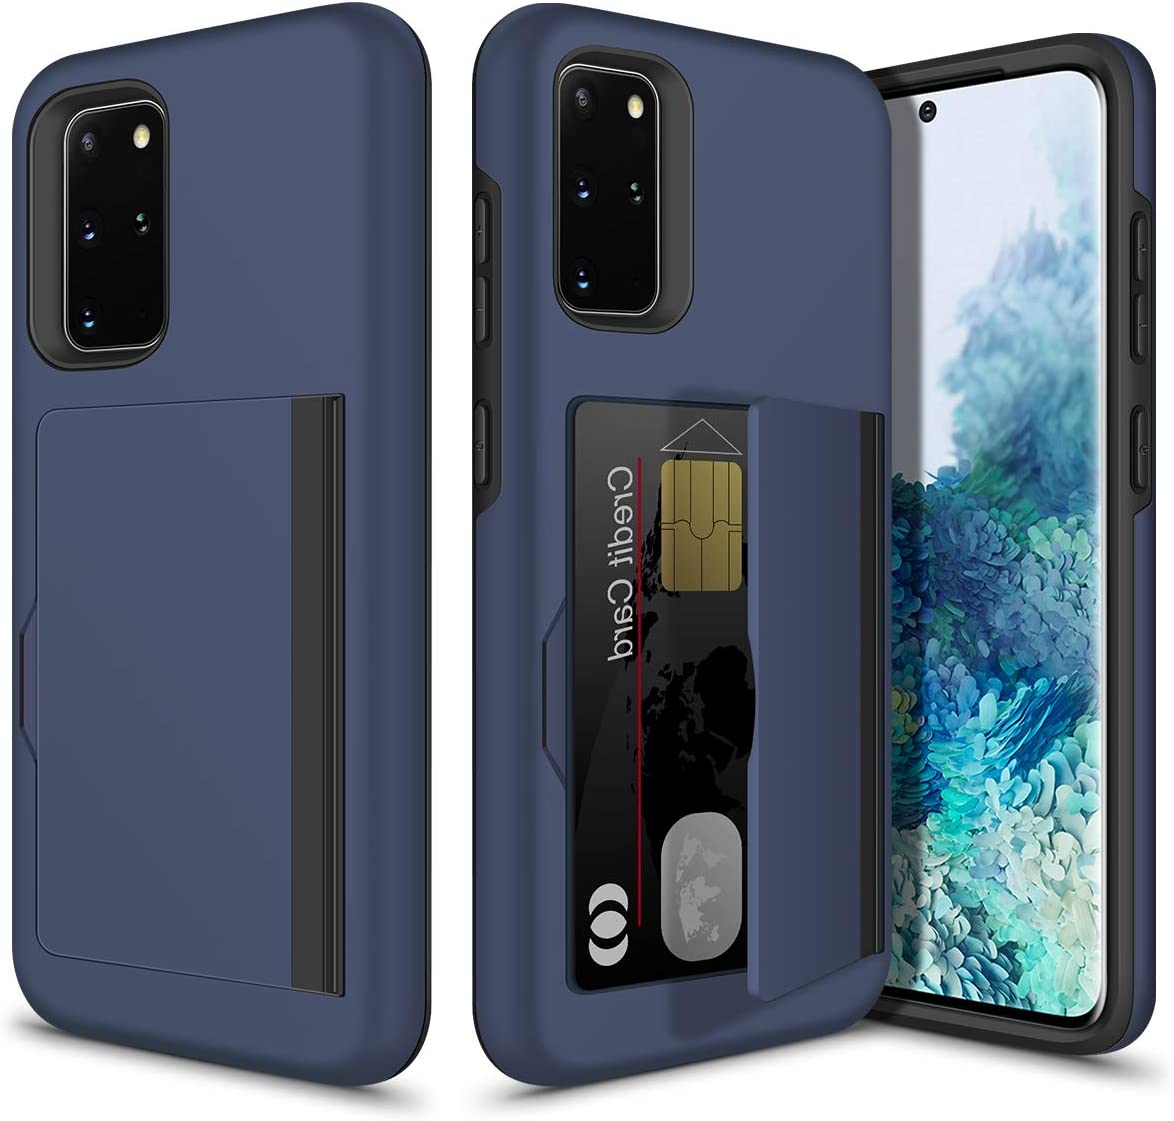 Vofolen for Galaxy S20 Plus Case S20+ Wallet Cover Credit Card Holder Slot Hidden Flip Pocket Hybrid Dual Layer Protective Hard Shell Rugged Rubber Bumper Armor Case for Samsung Galaxy S20+ 6.7 Navy